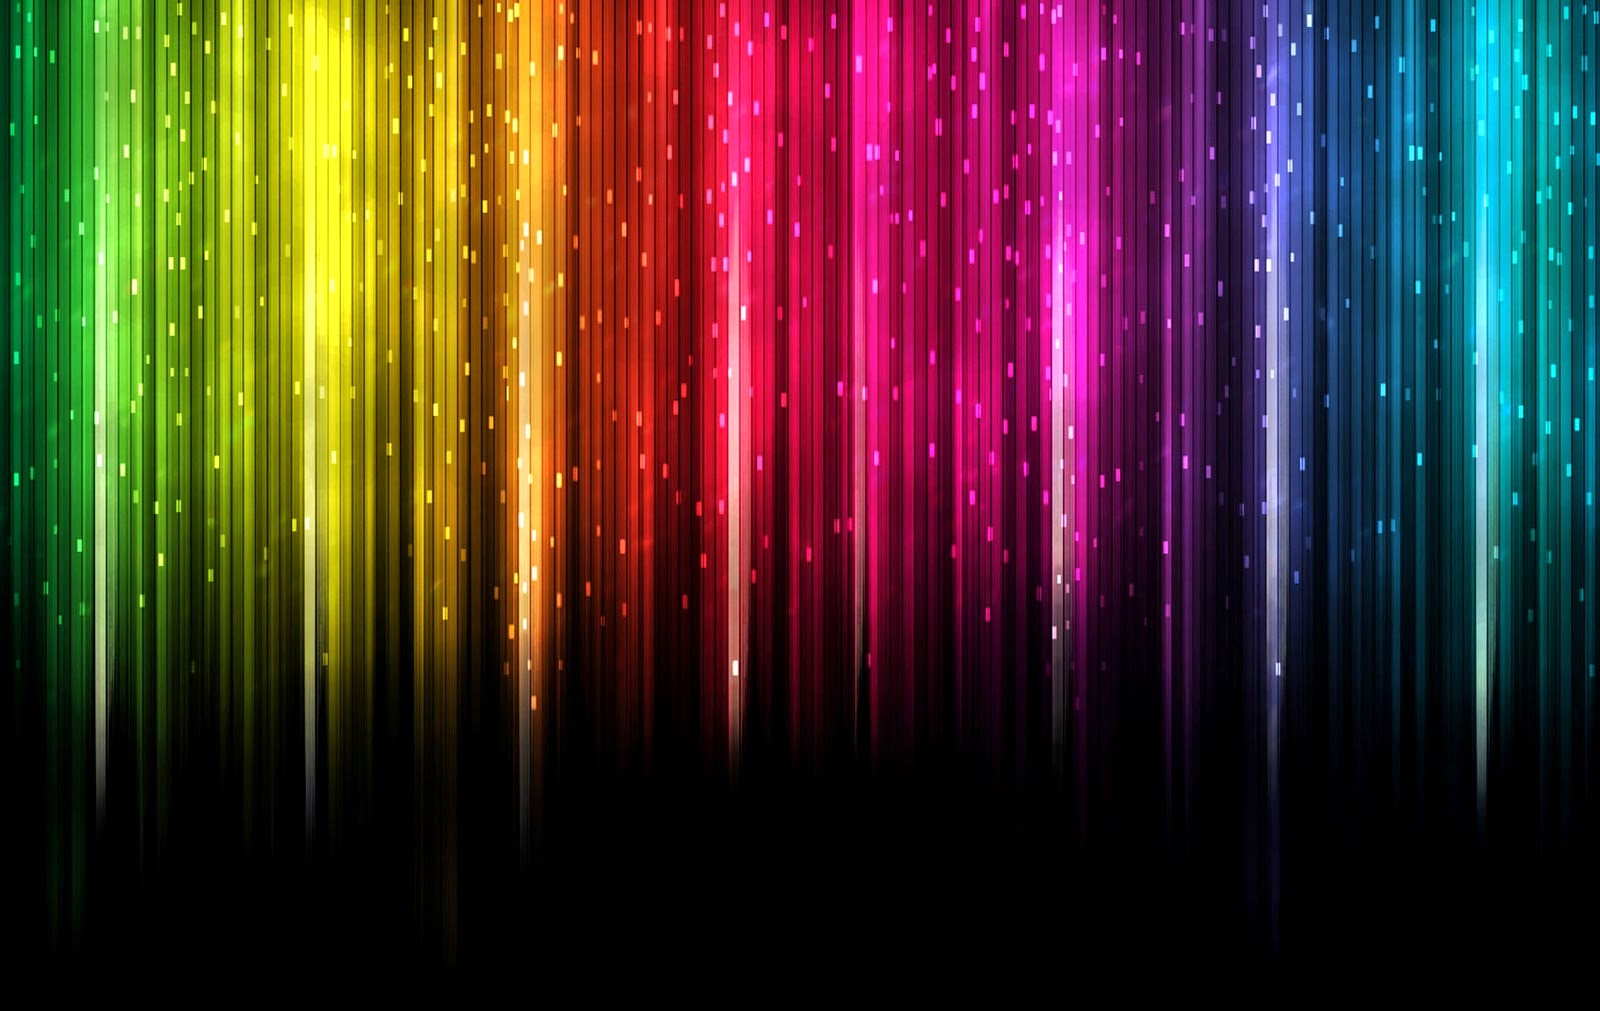 colorful wallpapers for mobile phones